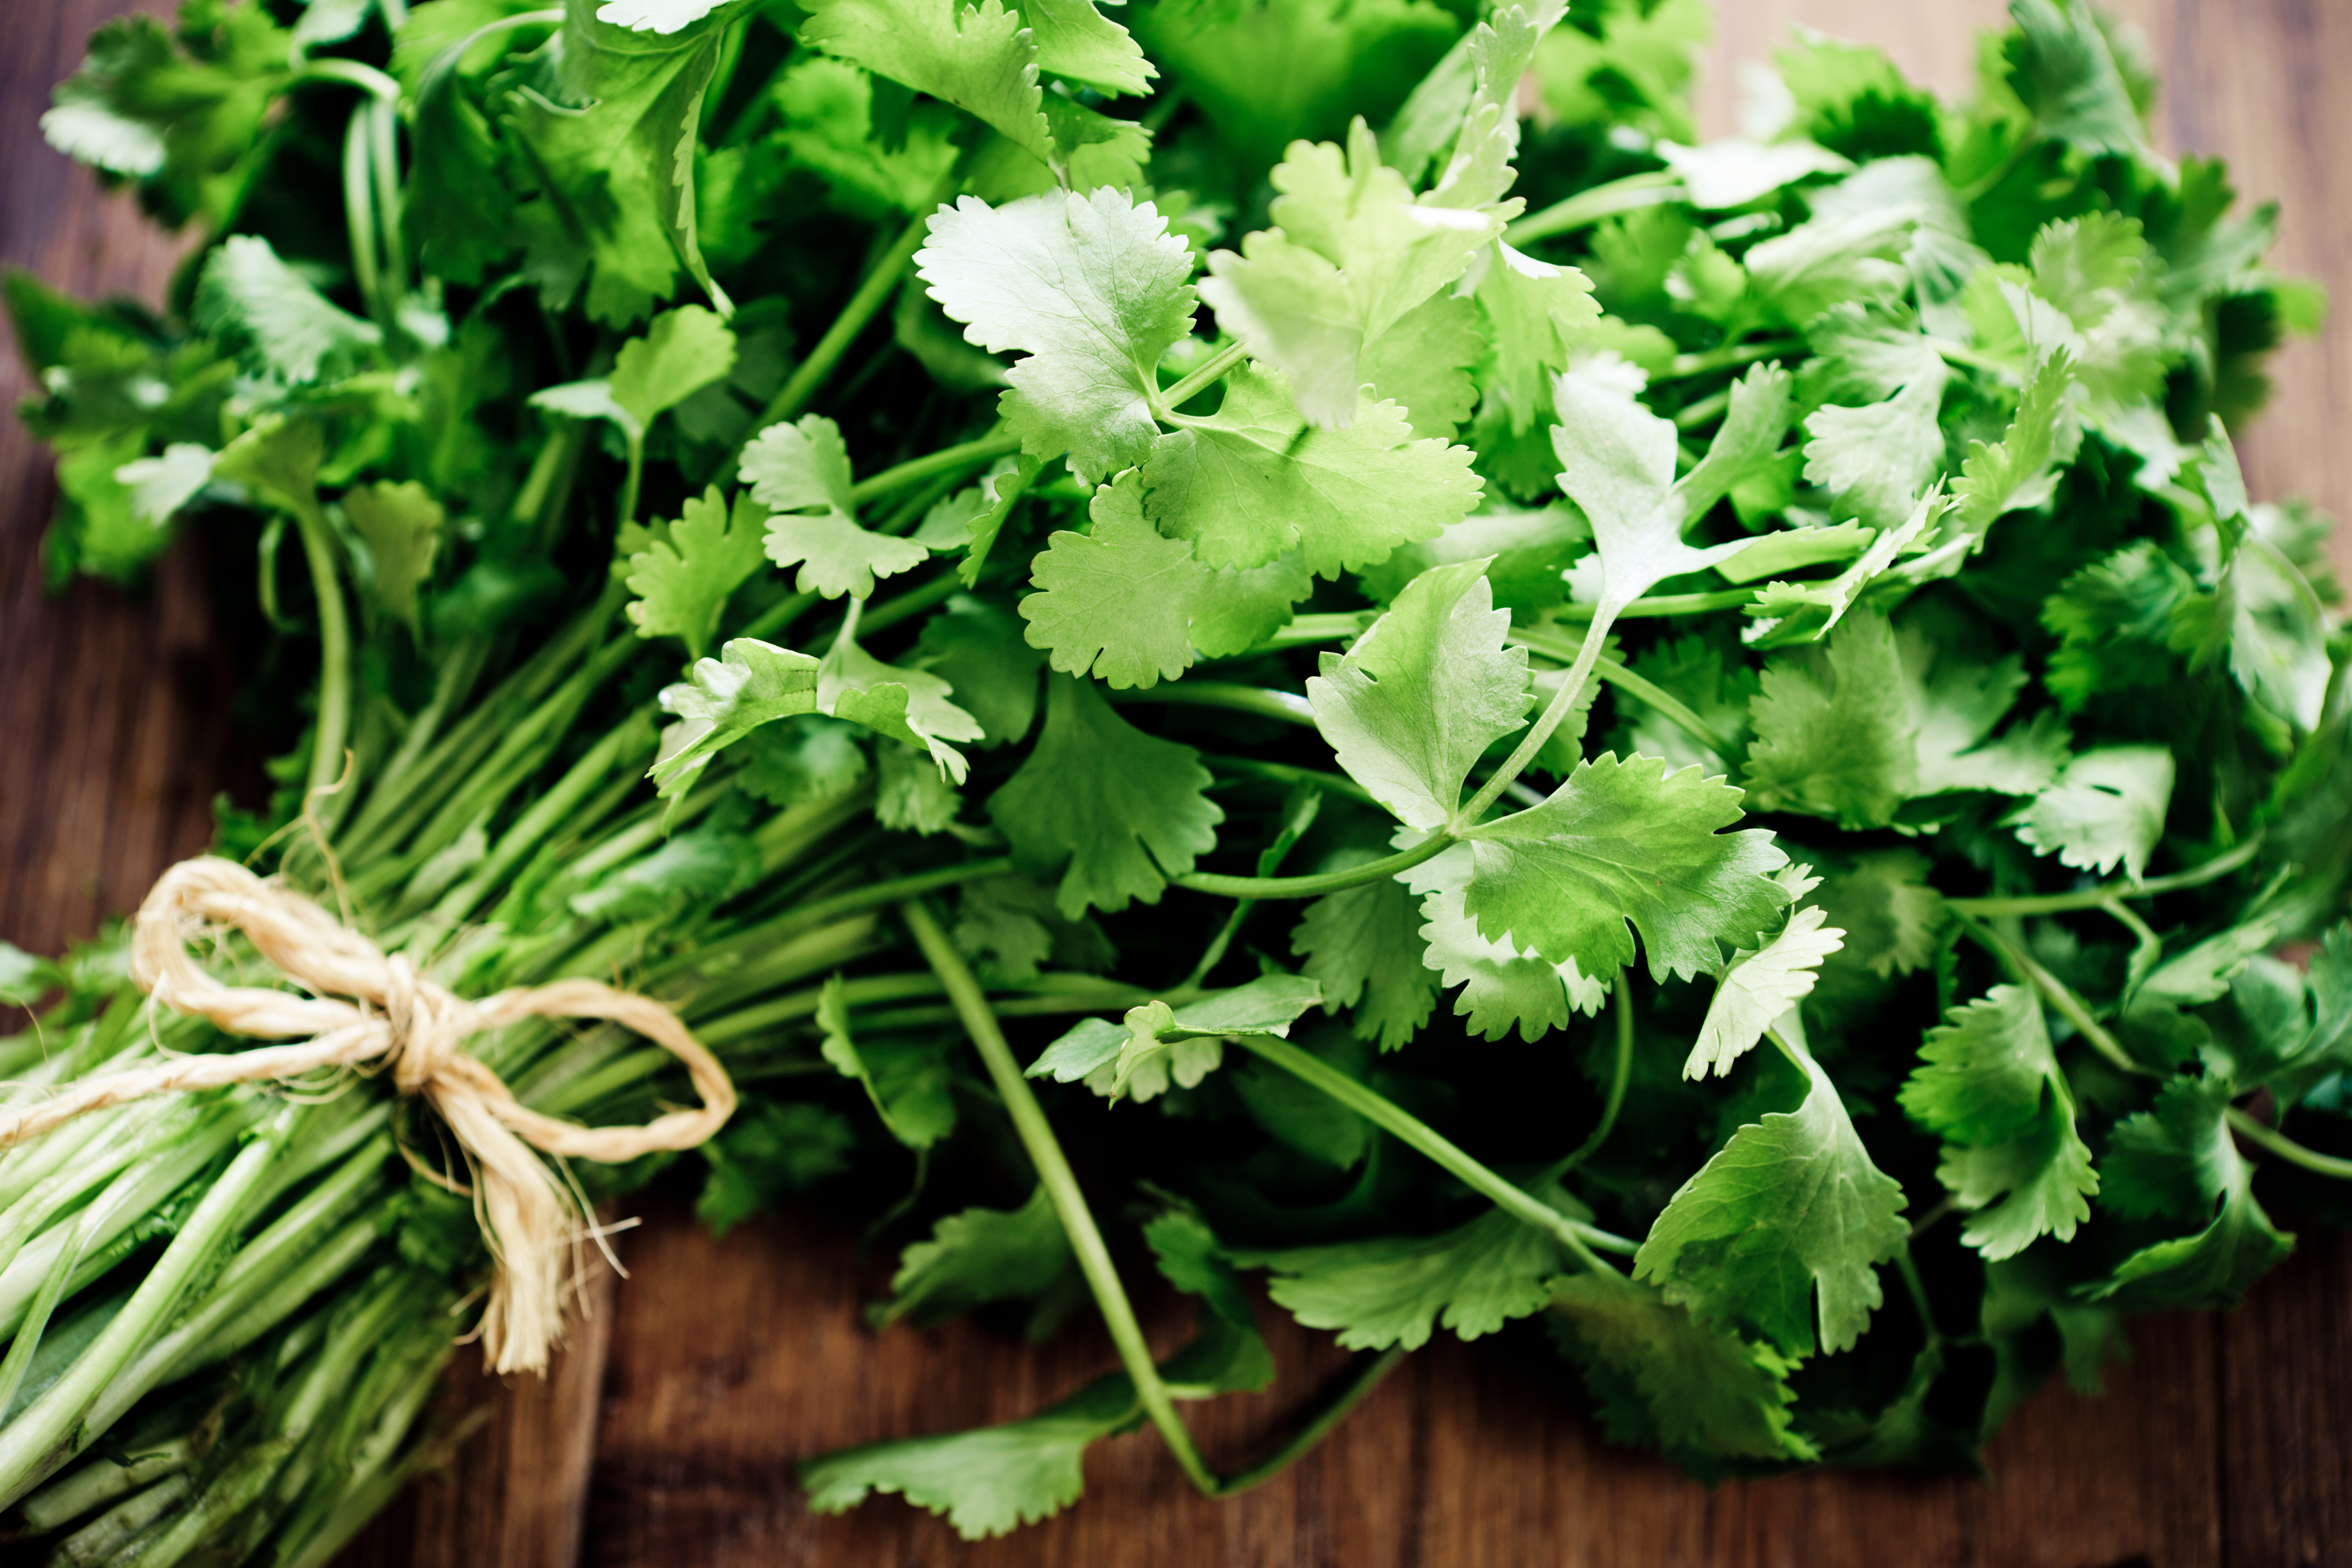 Storing and using fresh herbs